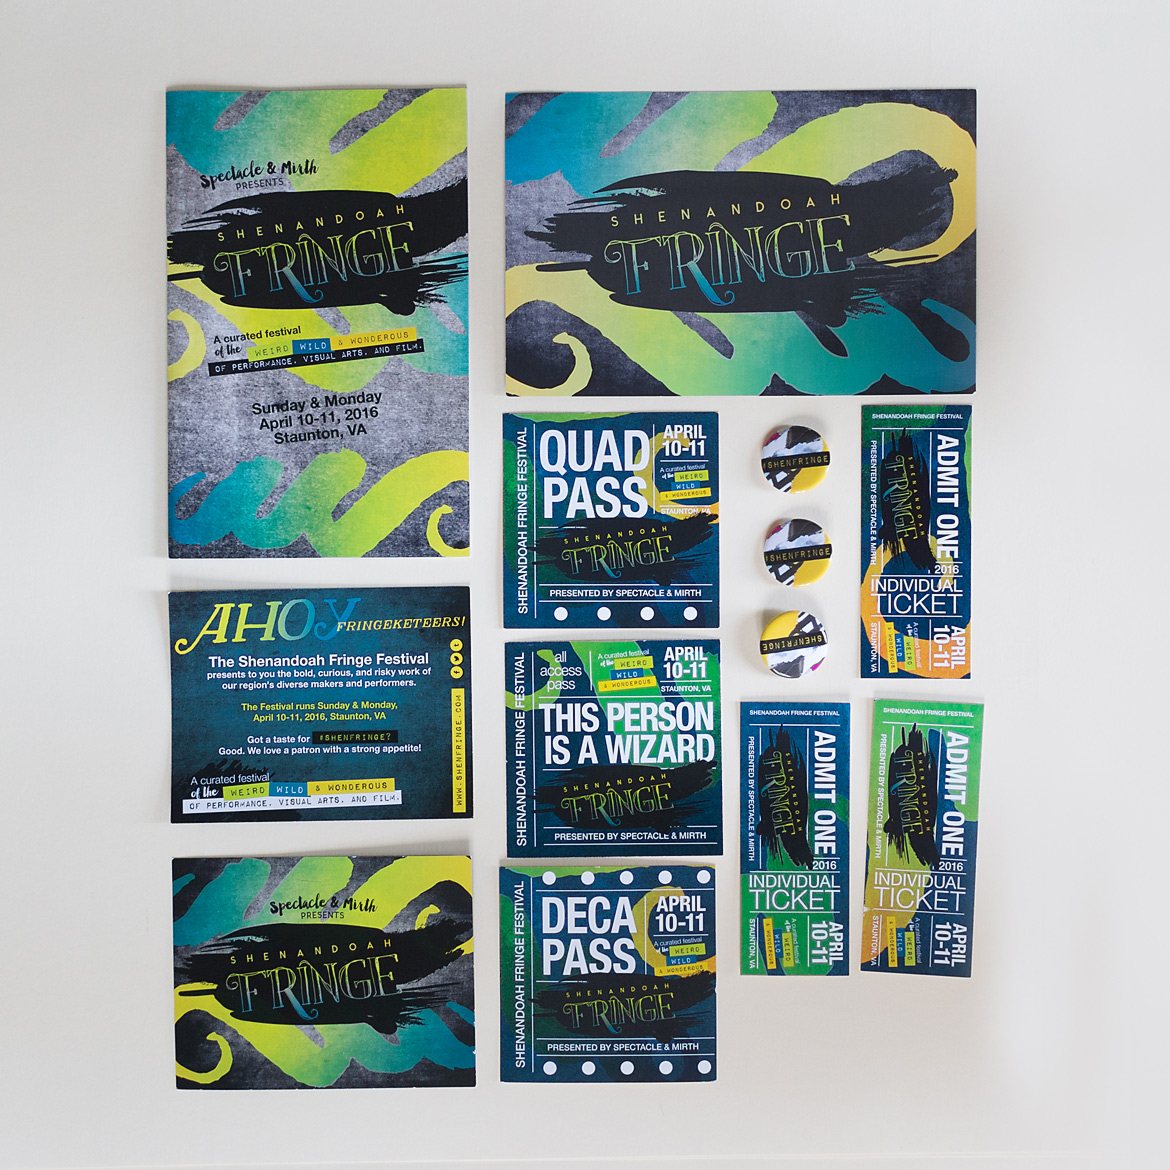 Shenandoah Fringe Festival: Event Identity & Collateral-3